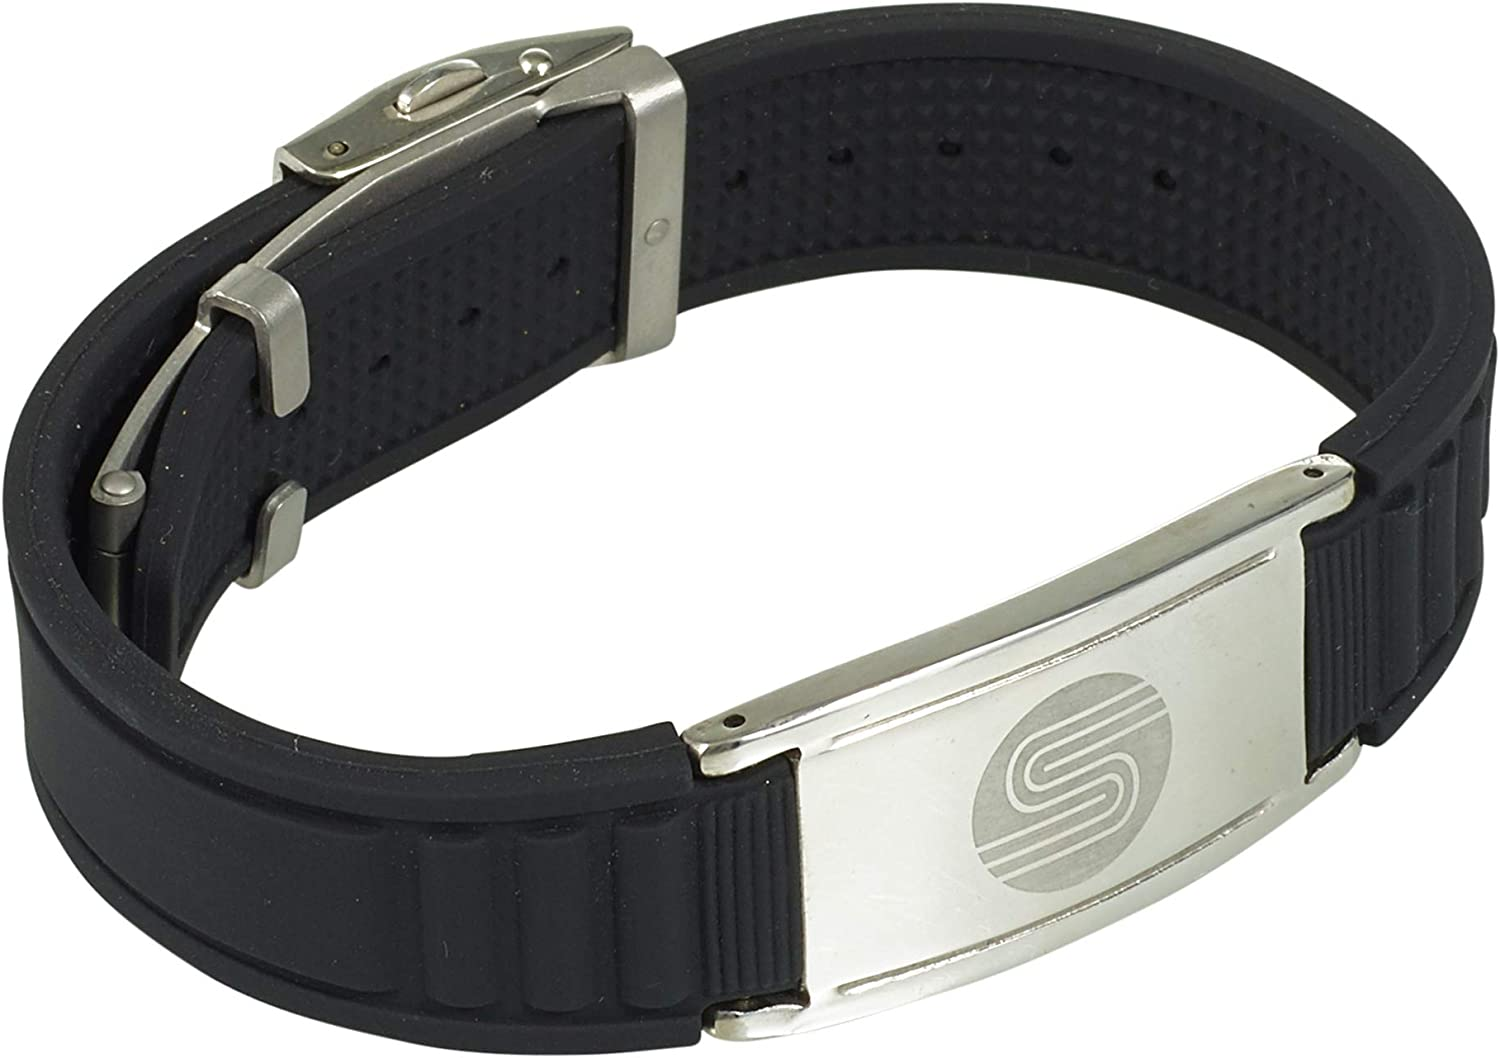 SATORI 4 in 1 Negative Ion Band, Germanium, Silicone,Charged with Negative Ions, The Ionic & Stylish Therapy Bracelet Unique Gift